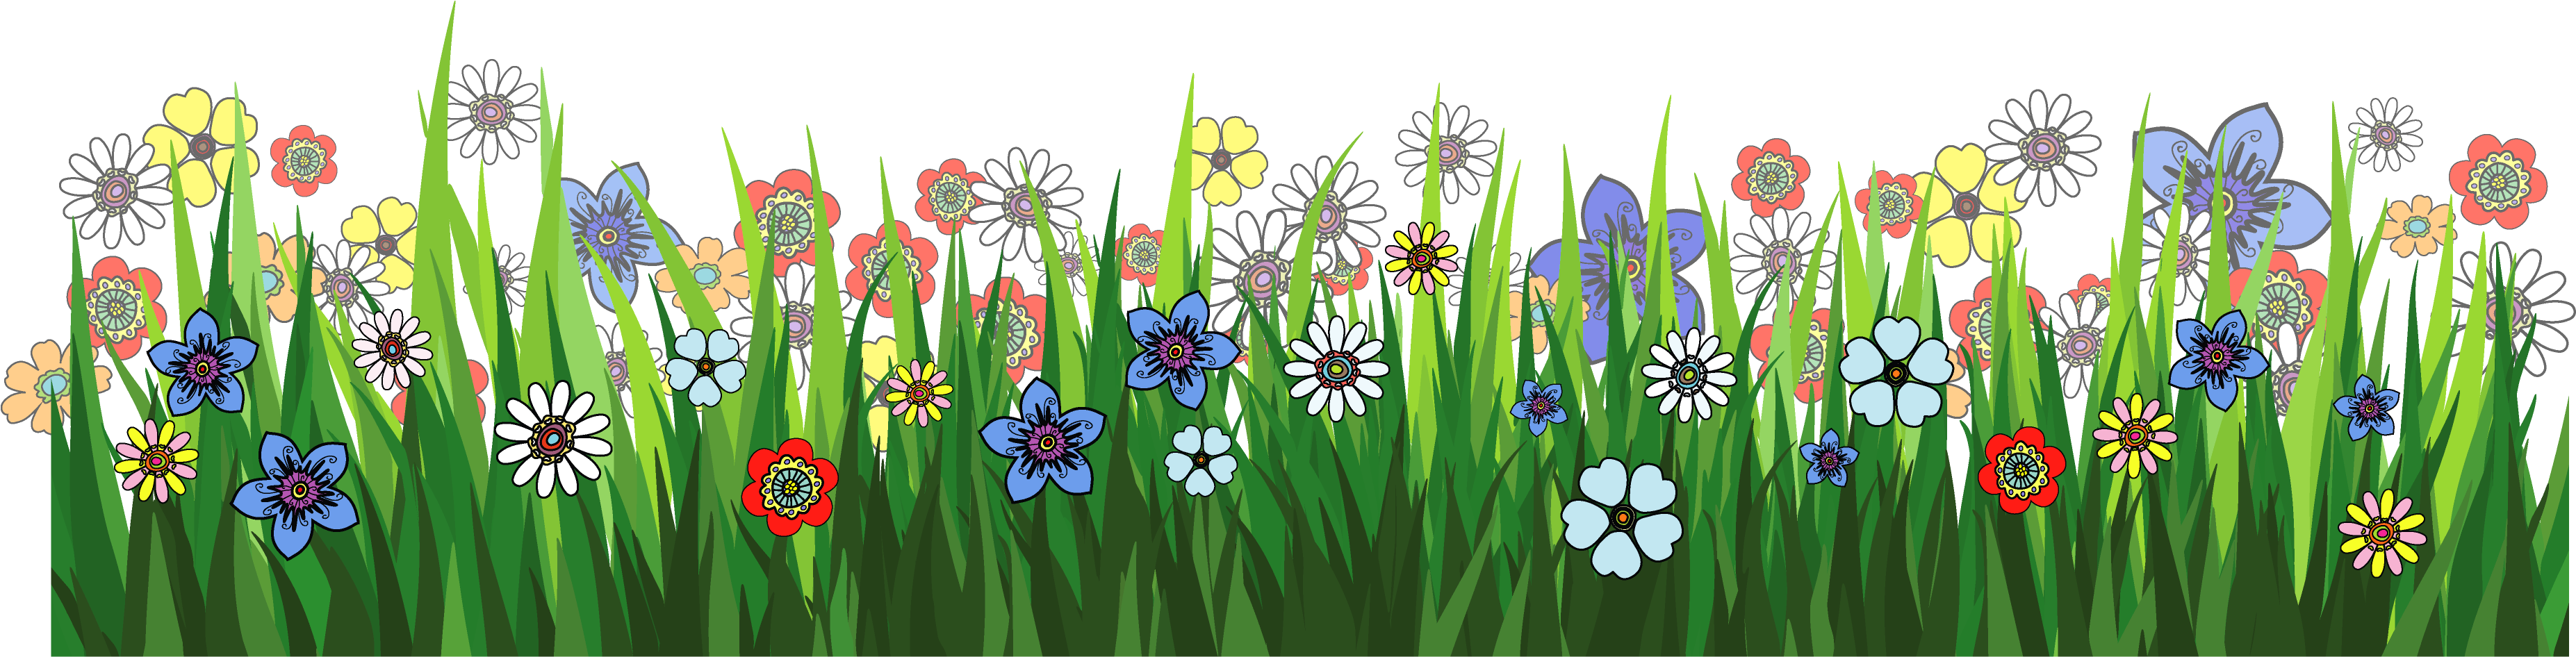 grass clipart cartoon flower garden tr 1156904 png images pngio grass clipart cartoon flower garden